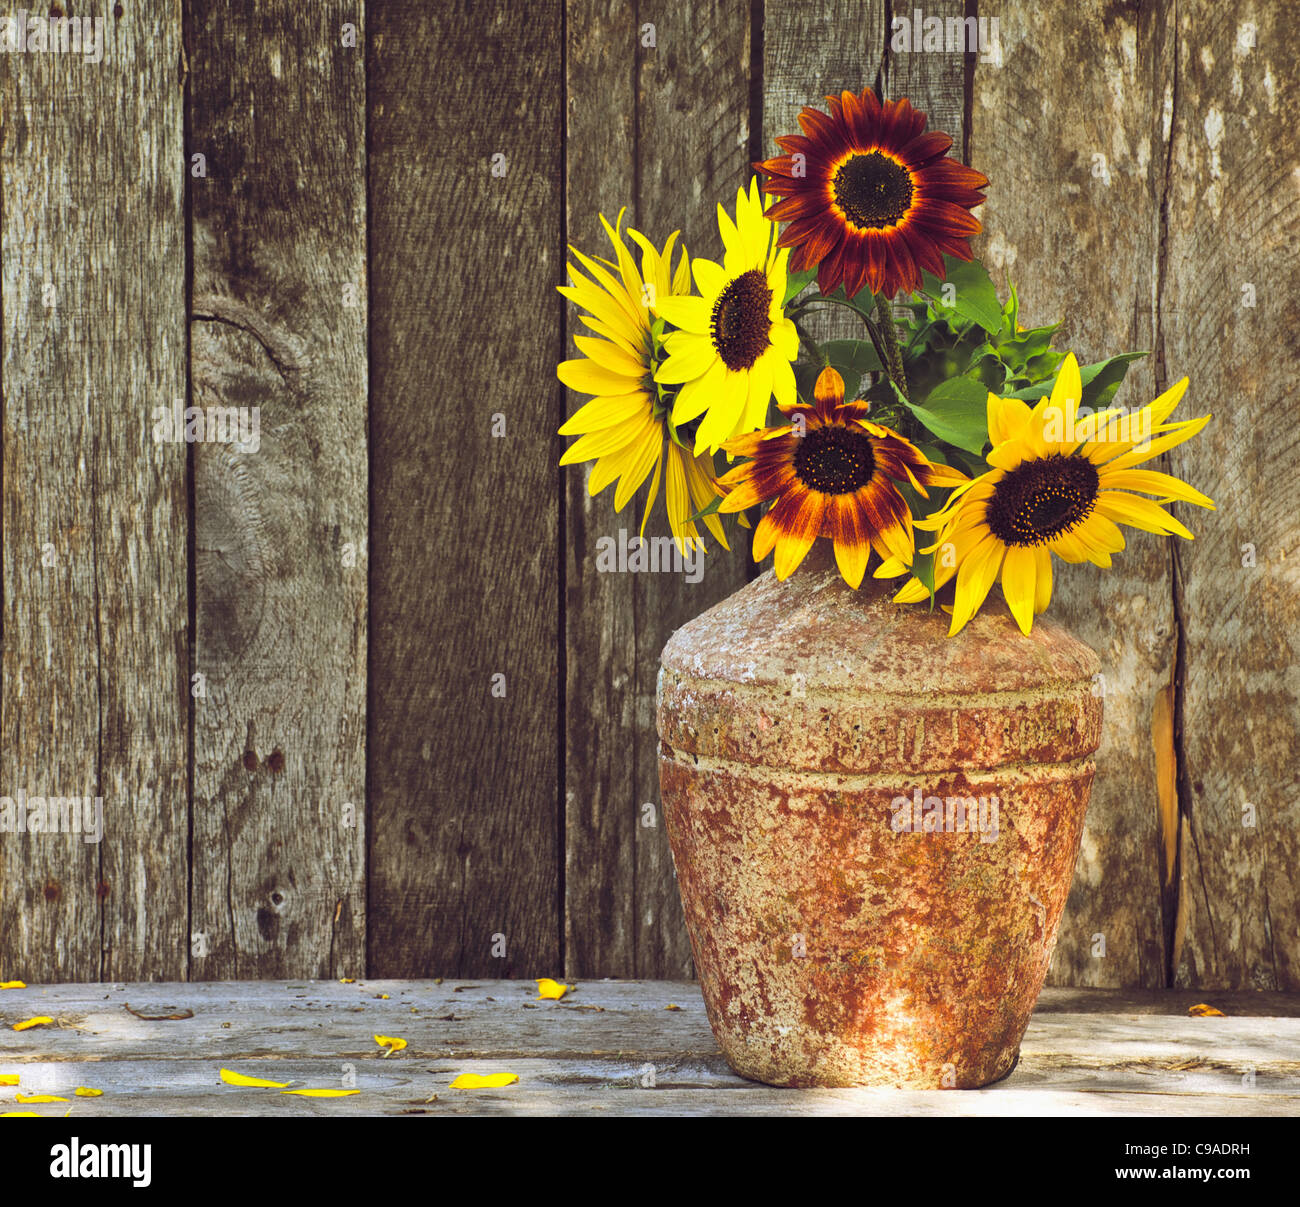 Richly Toned Image Of A Rustic Vase With Beautiful Sunflowers On Grunge Wood Background Copy Space